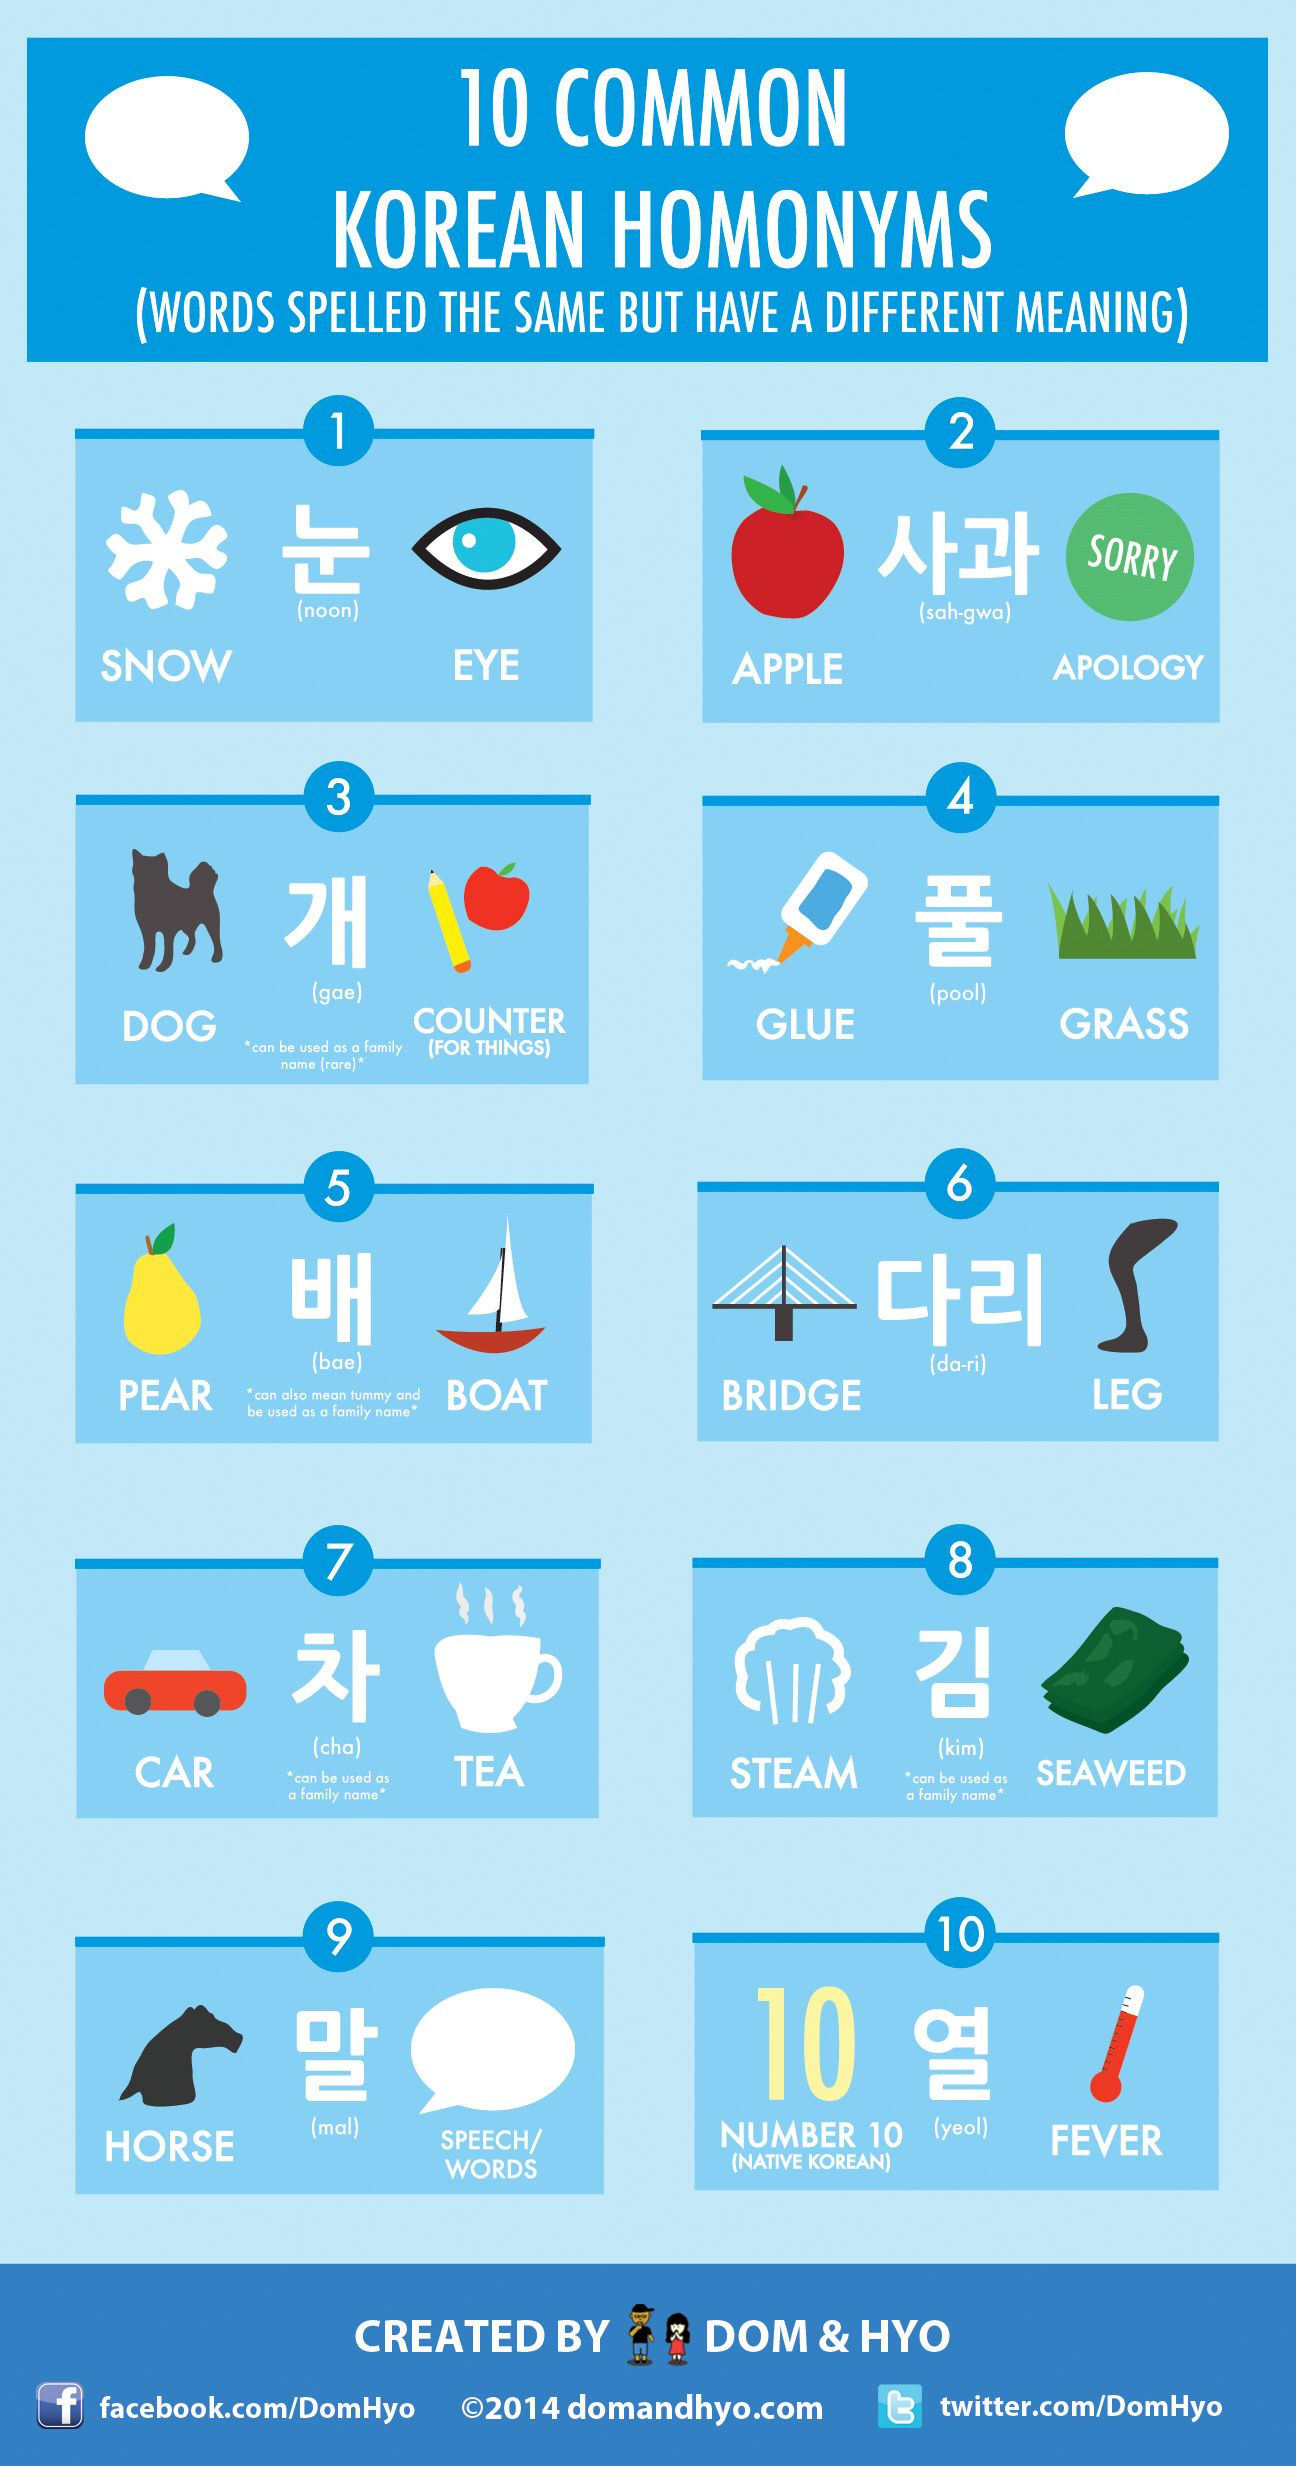 10 Common Korean Homonyms